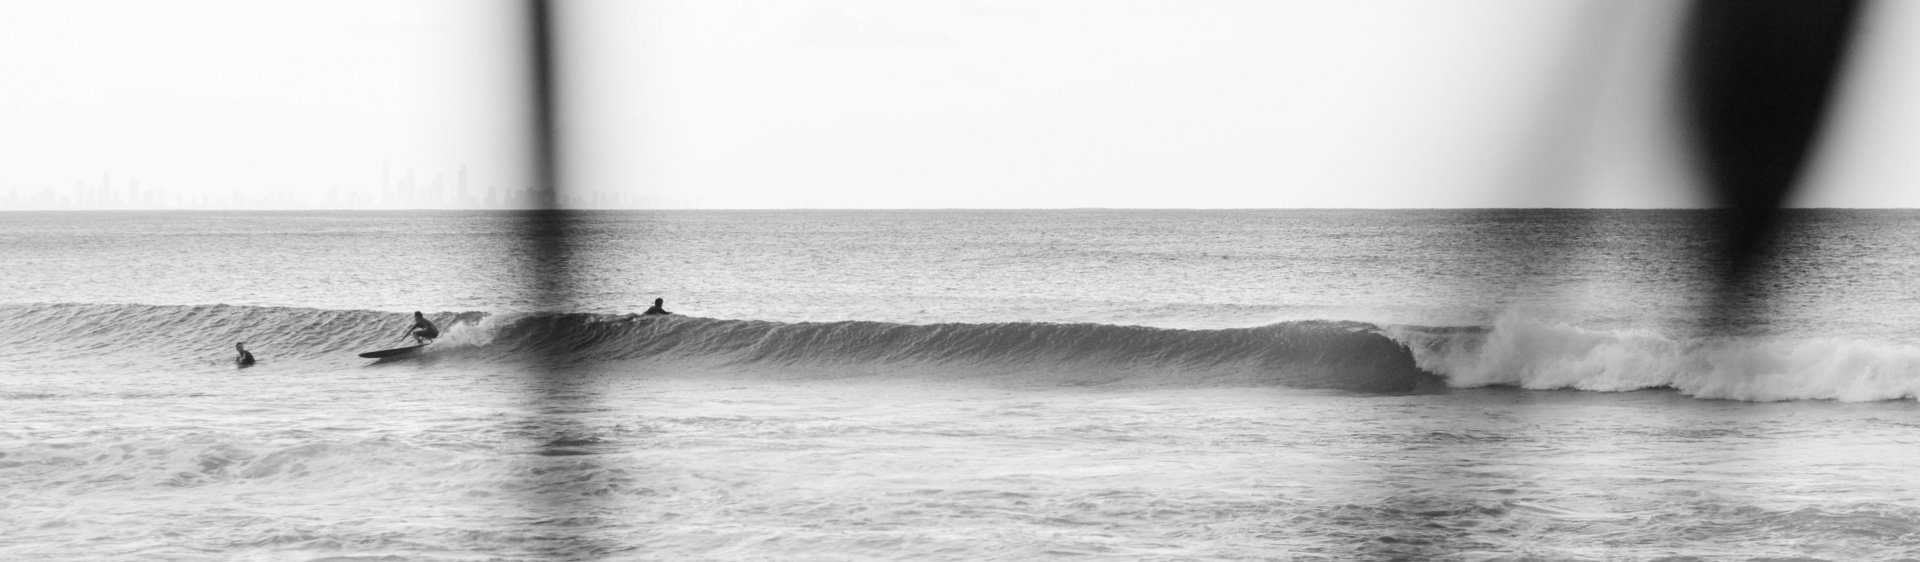 StephenGreater's photo of Snapper Rocks